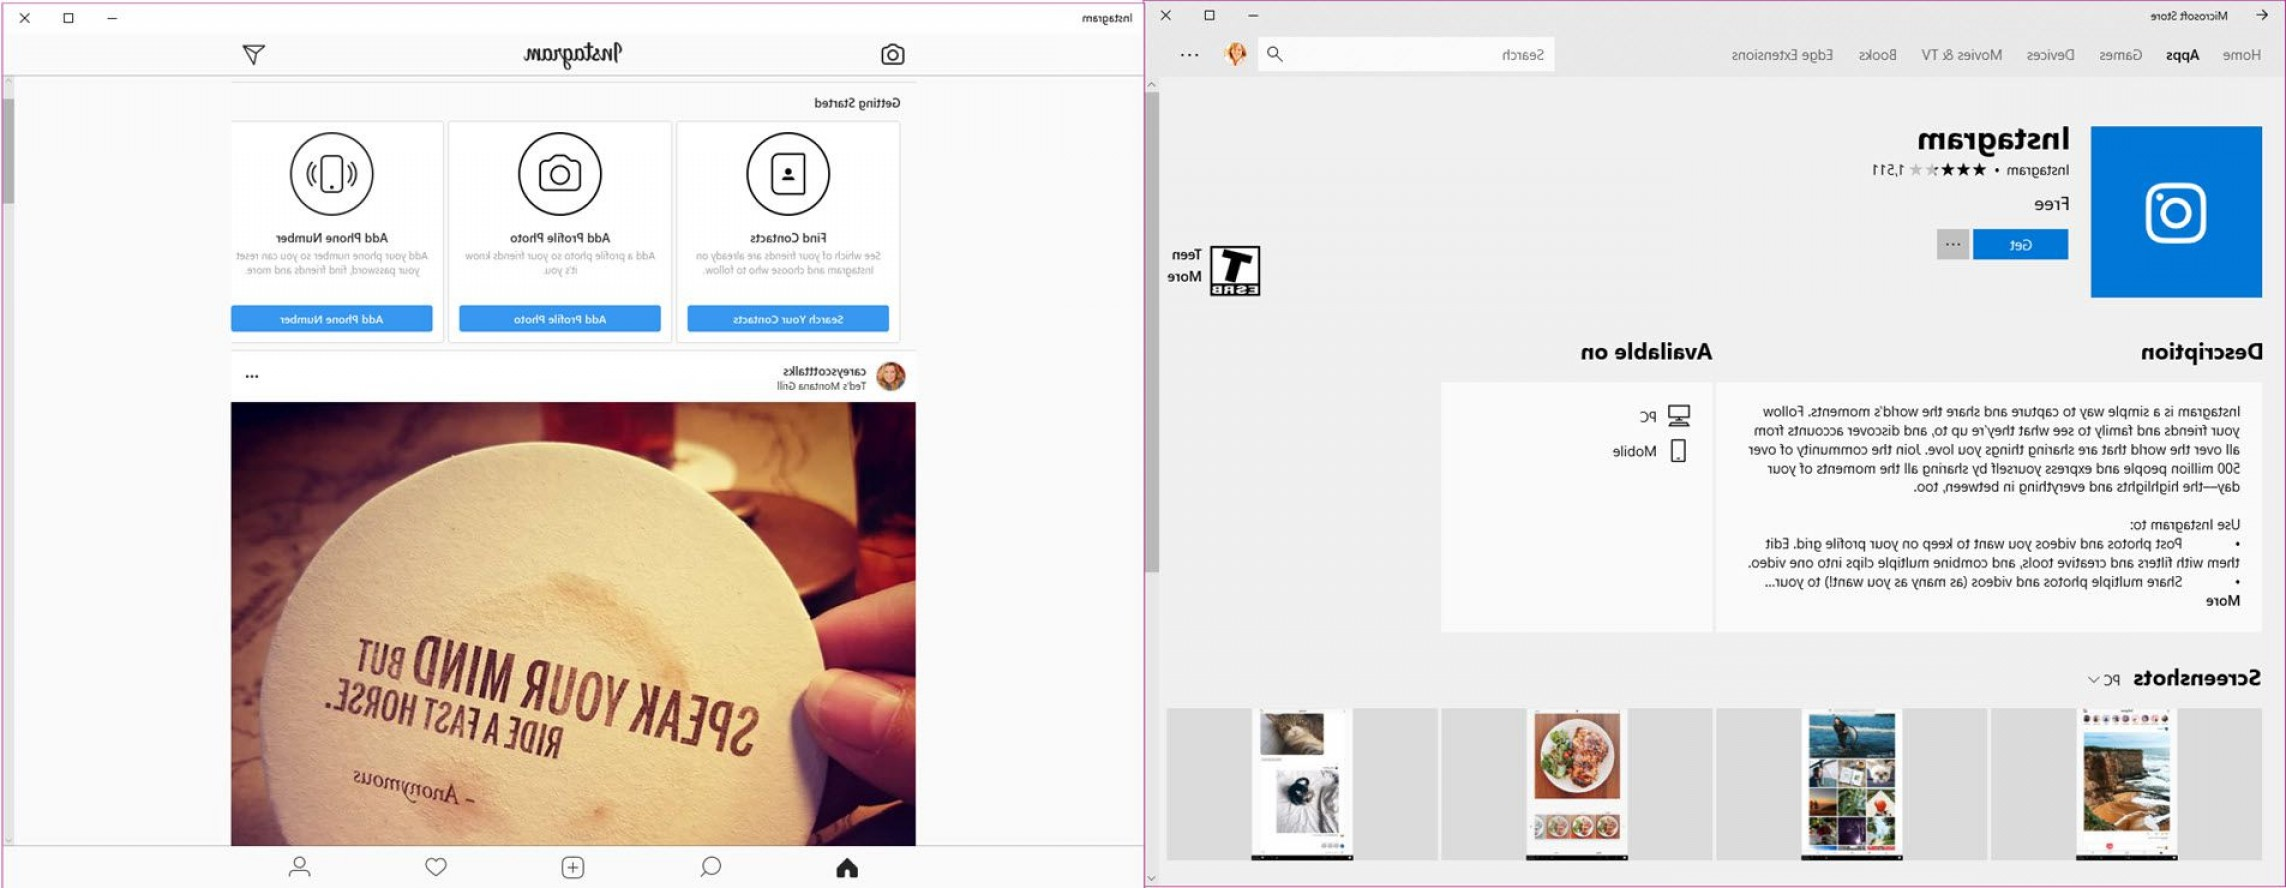 Official Instagram Logo Vector: How To Use Instagram On A Computer Pc Or Mac